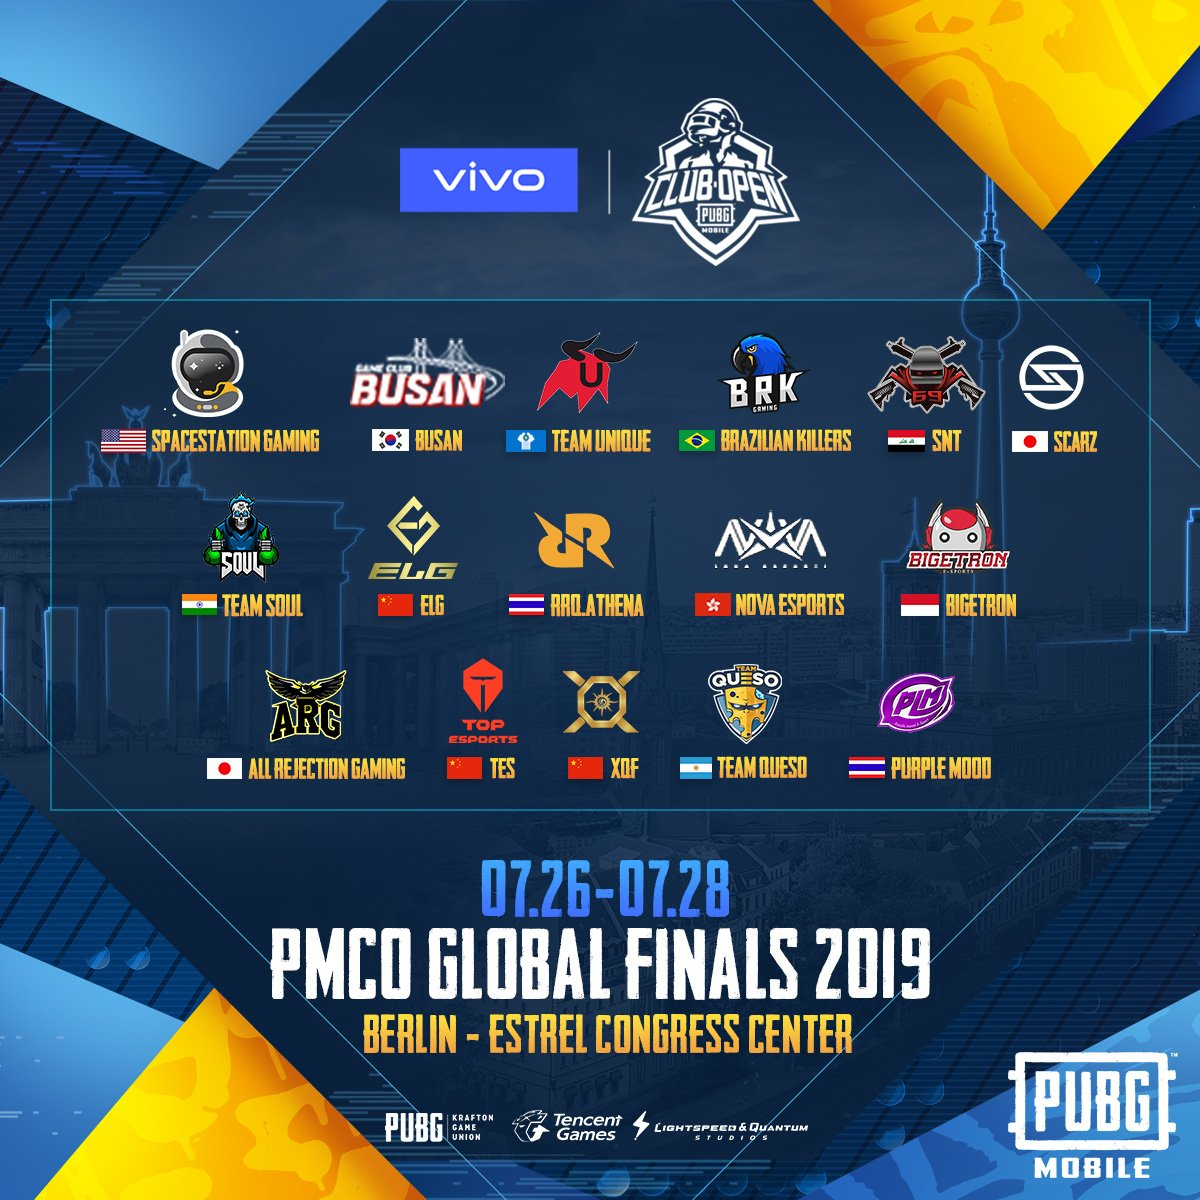 Congrats to Purple Mood, XQF, TES, Team Queso, and All Rejection Gaming who triumphed in the Prelims! Here is the final 16 team list who will be competing in the #PMCO GLOBAL FINALS, sponsored by Vivo.<br>http://pic.twitter.com/INvP9WYgeW